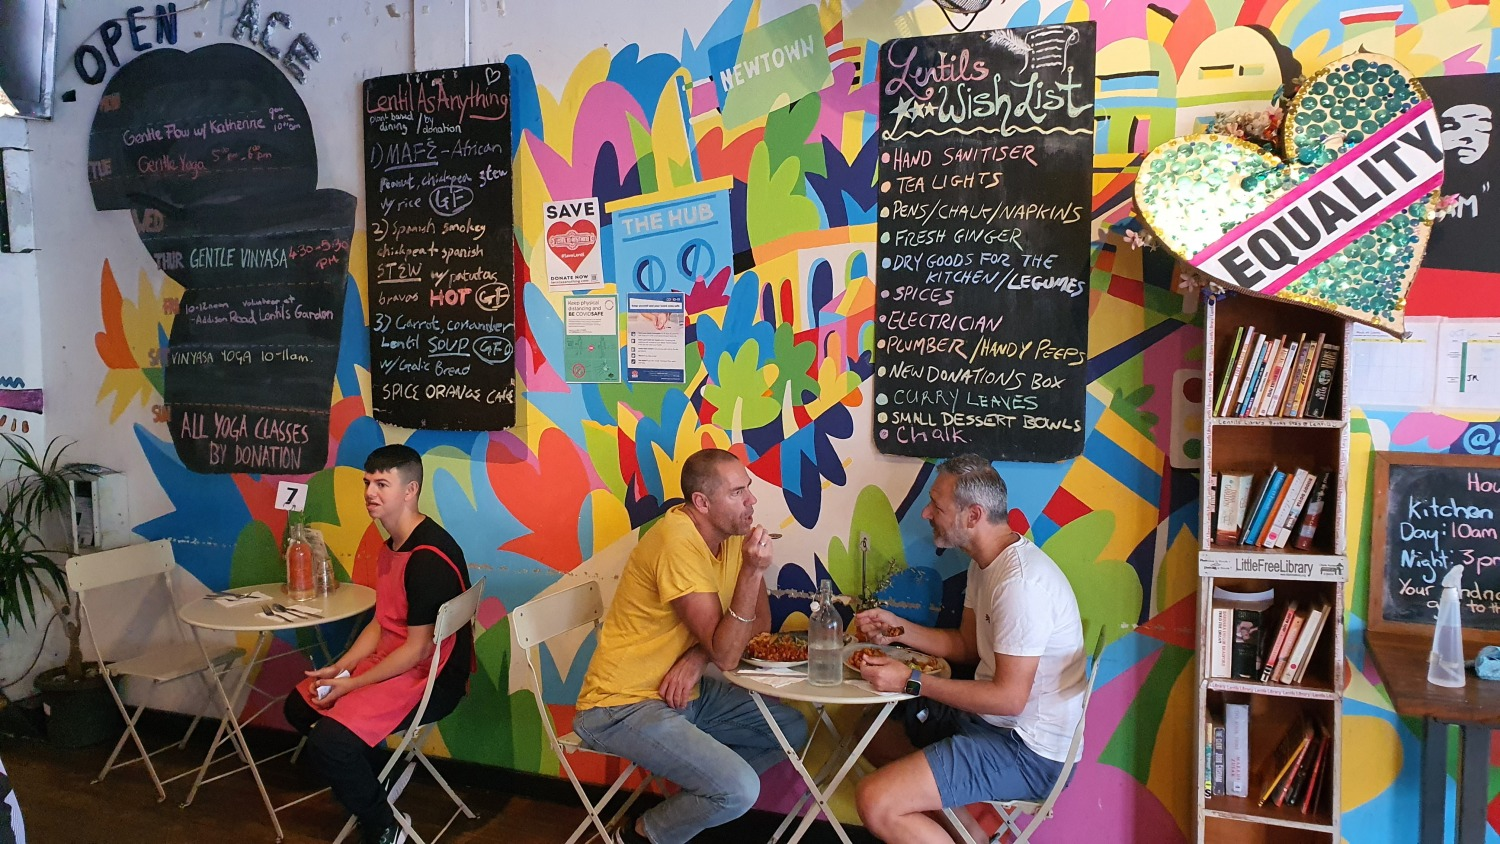 Lentil As Anything Newtown Cafes Bars Sydney Art Out Live (9)